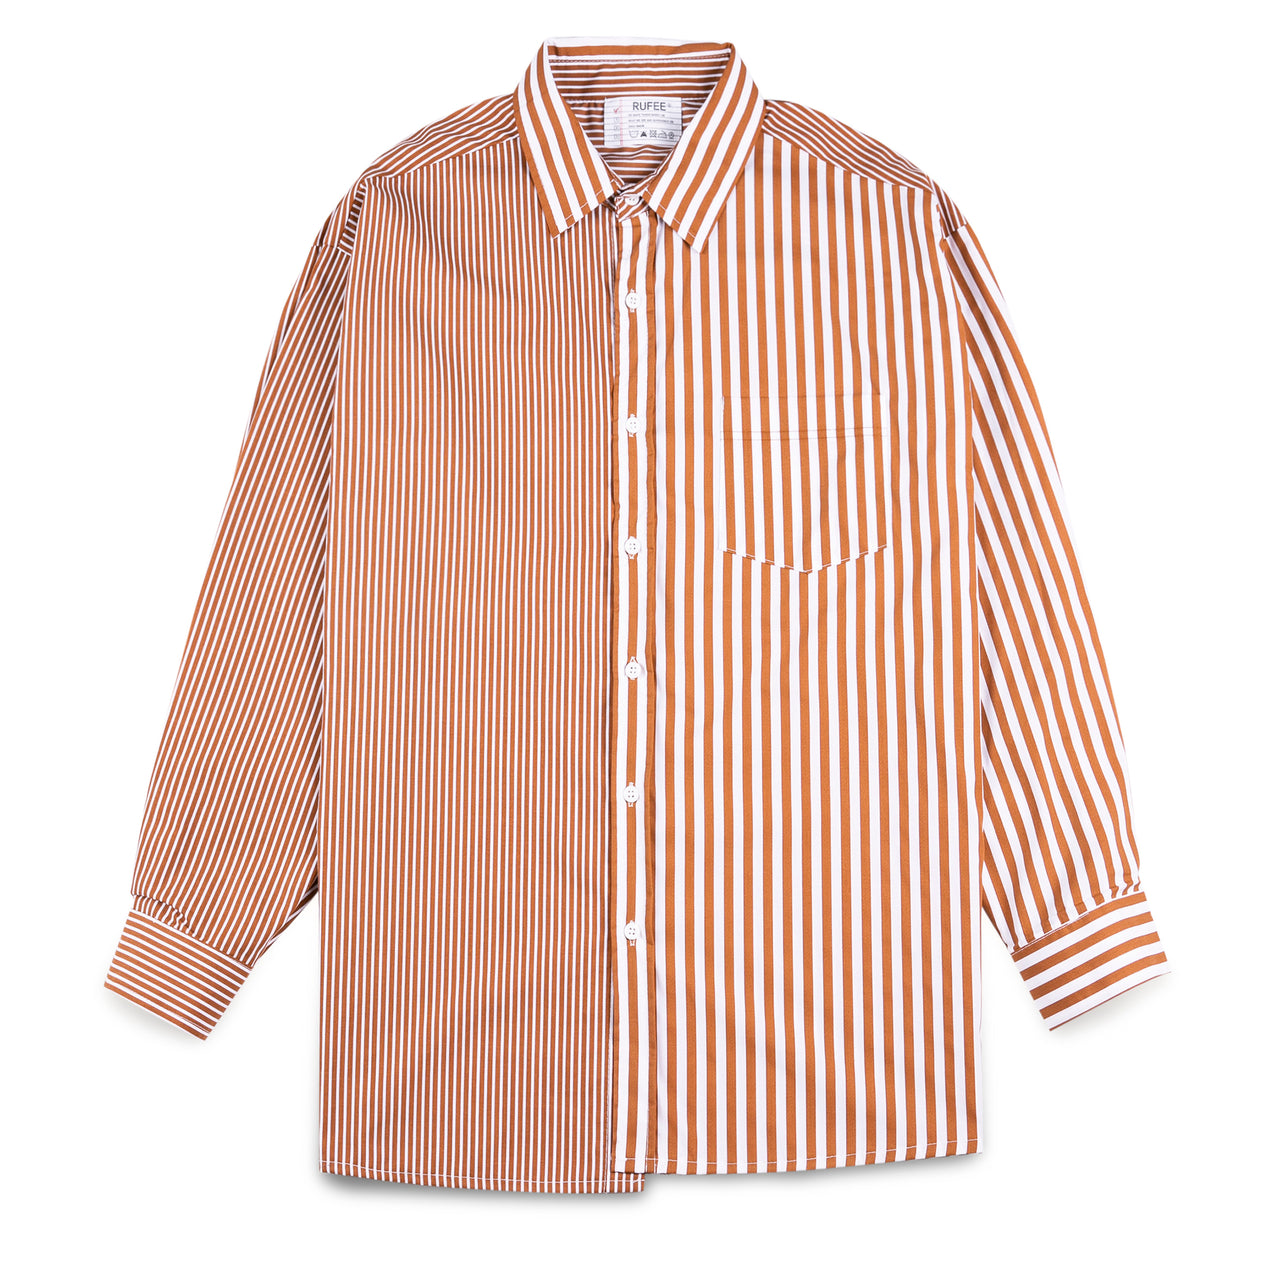 Rupee Brown Striped Shirt